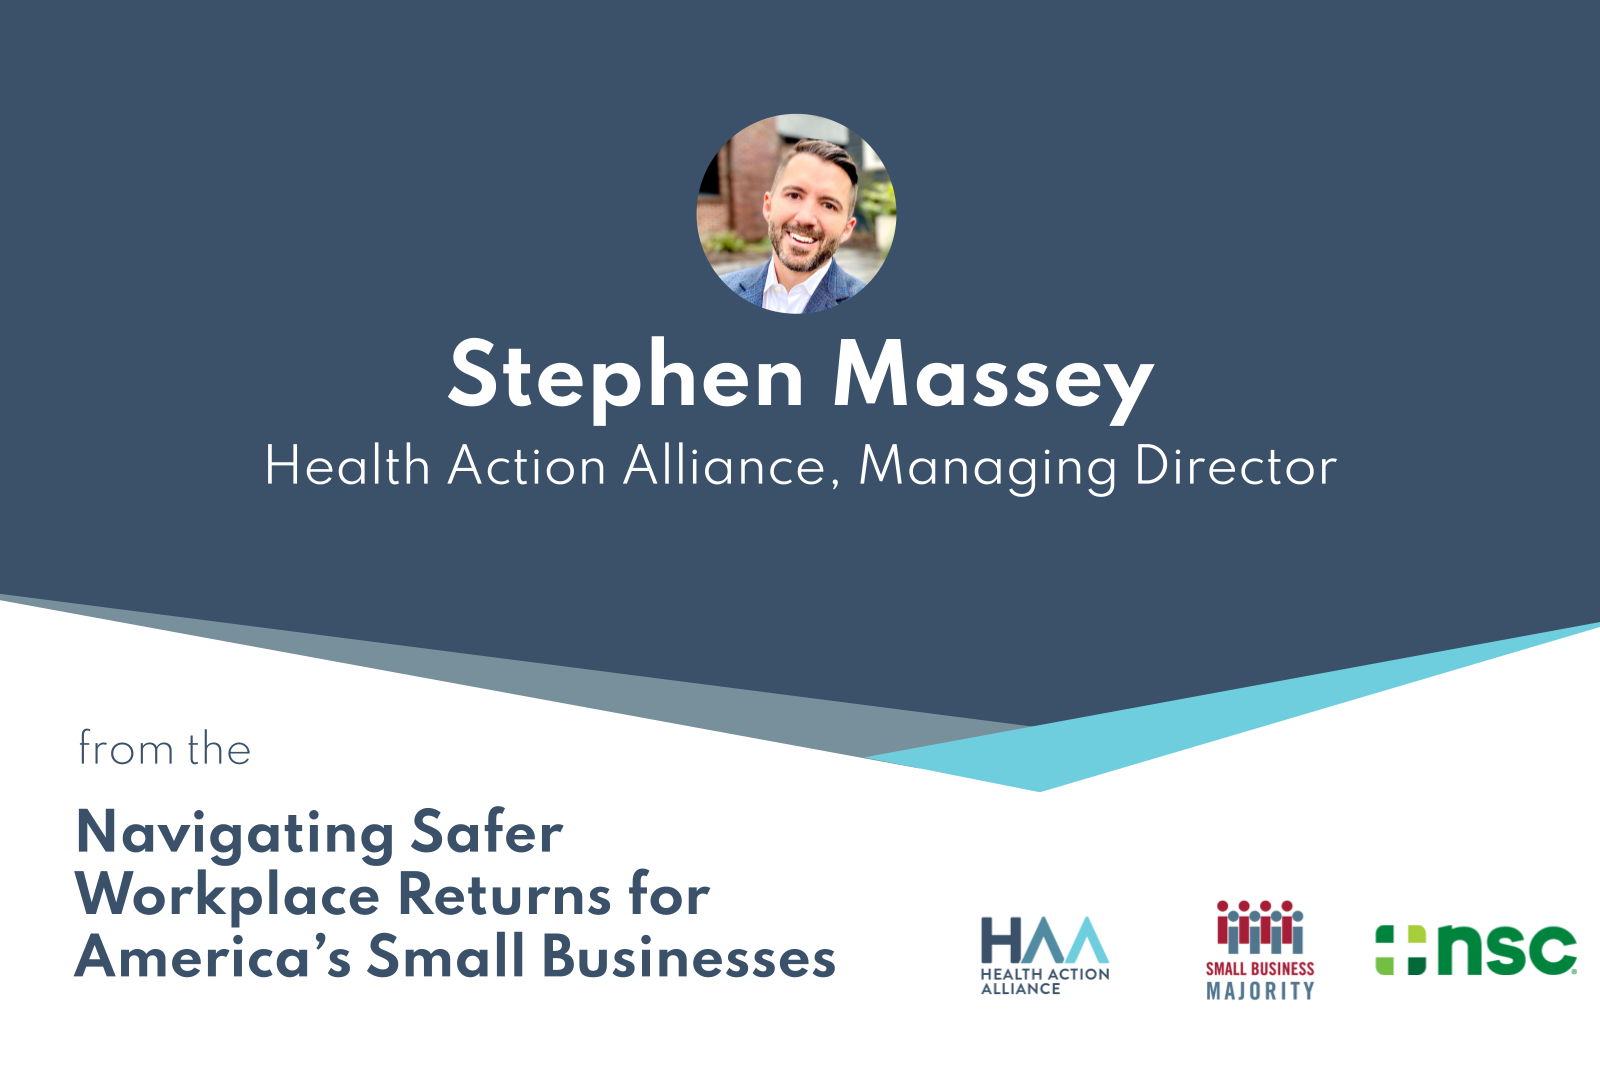 Navigating Safer Workplace Returns for America's Small Businesses - Stephen Massey, Health Action Alliance